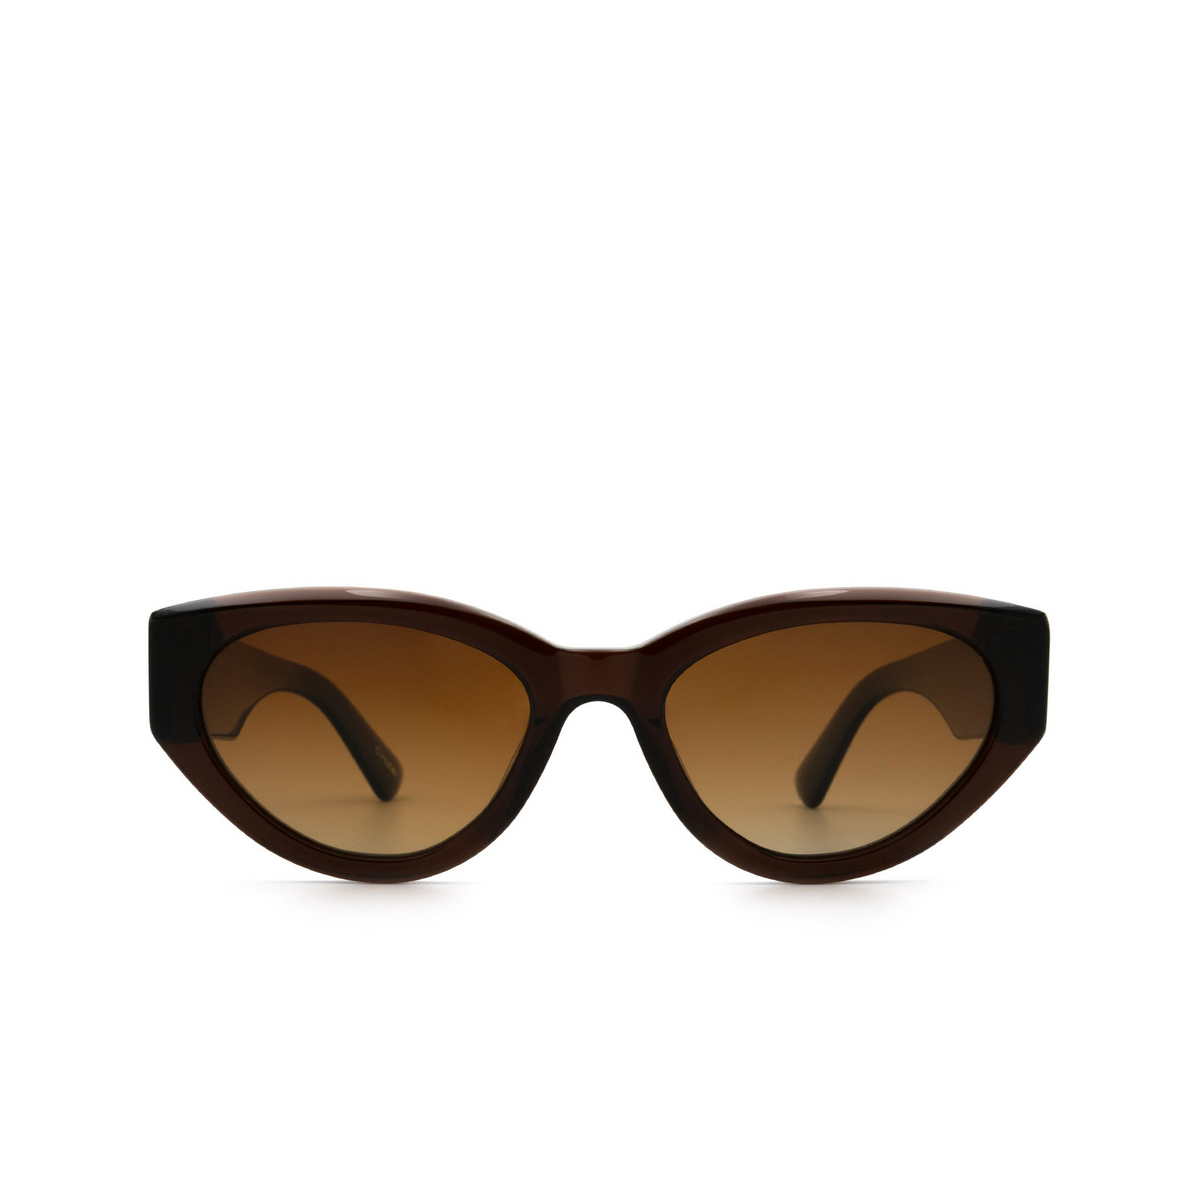 Chimi® Cat-eye Sunglasses: 06 color Brown - front view.